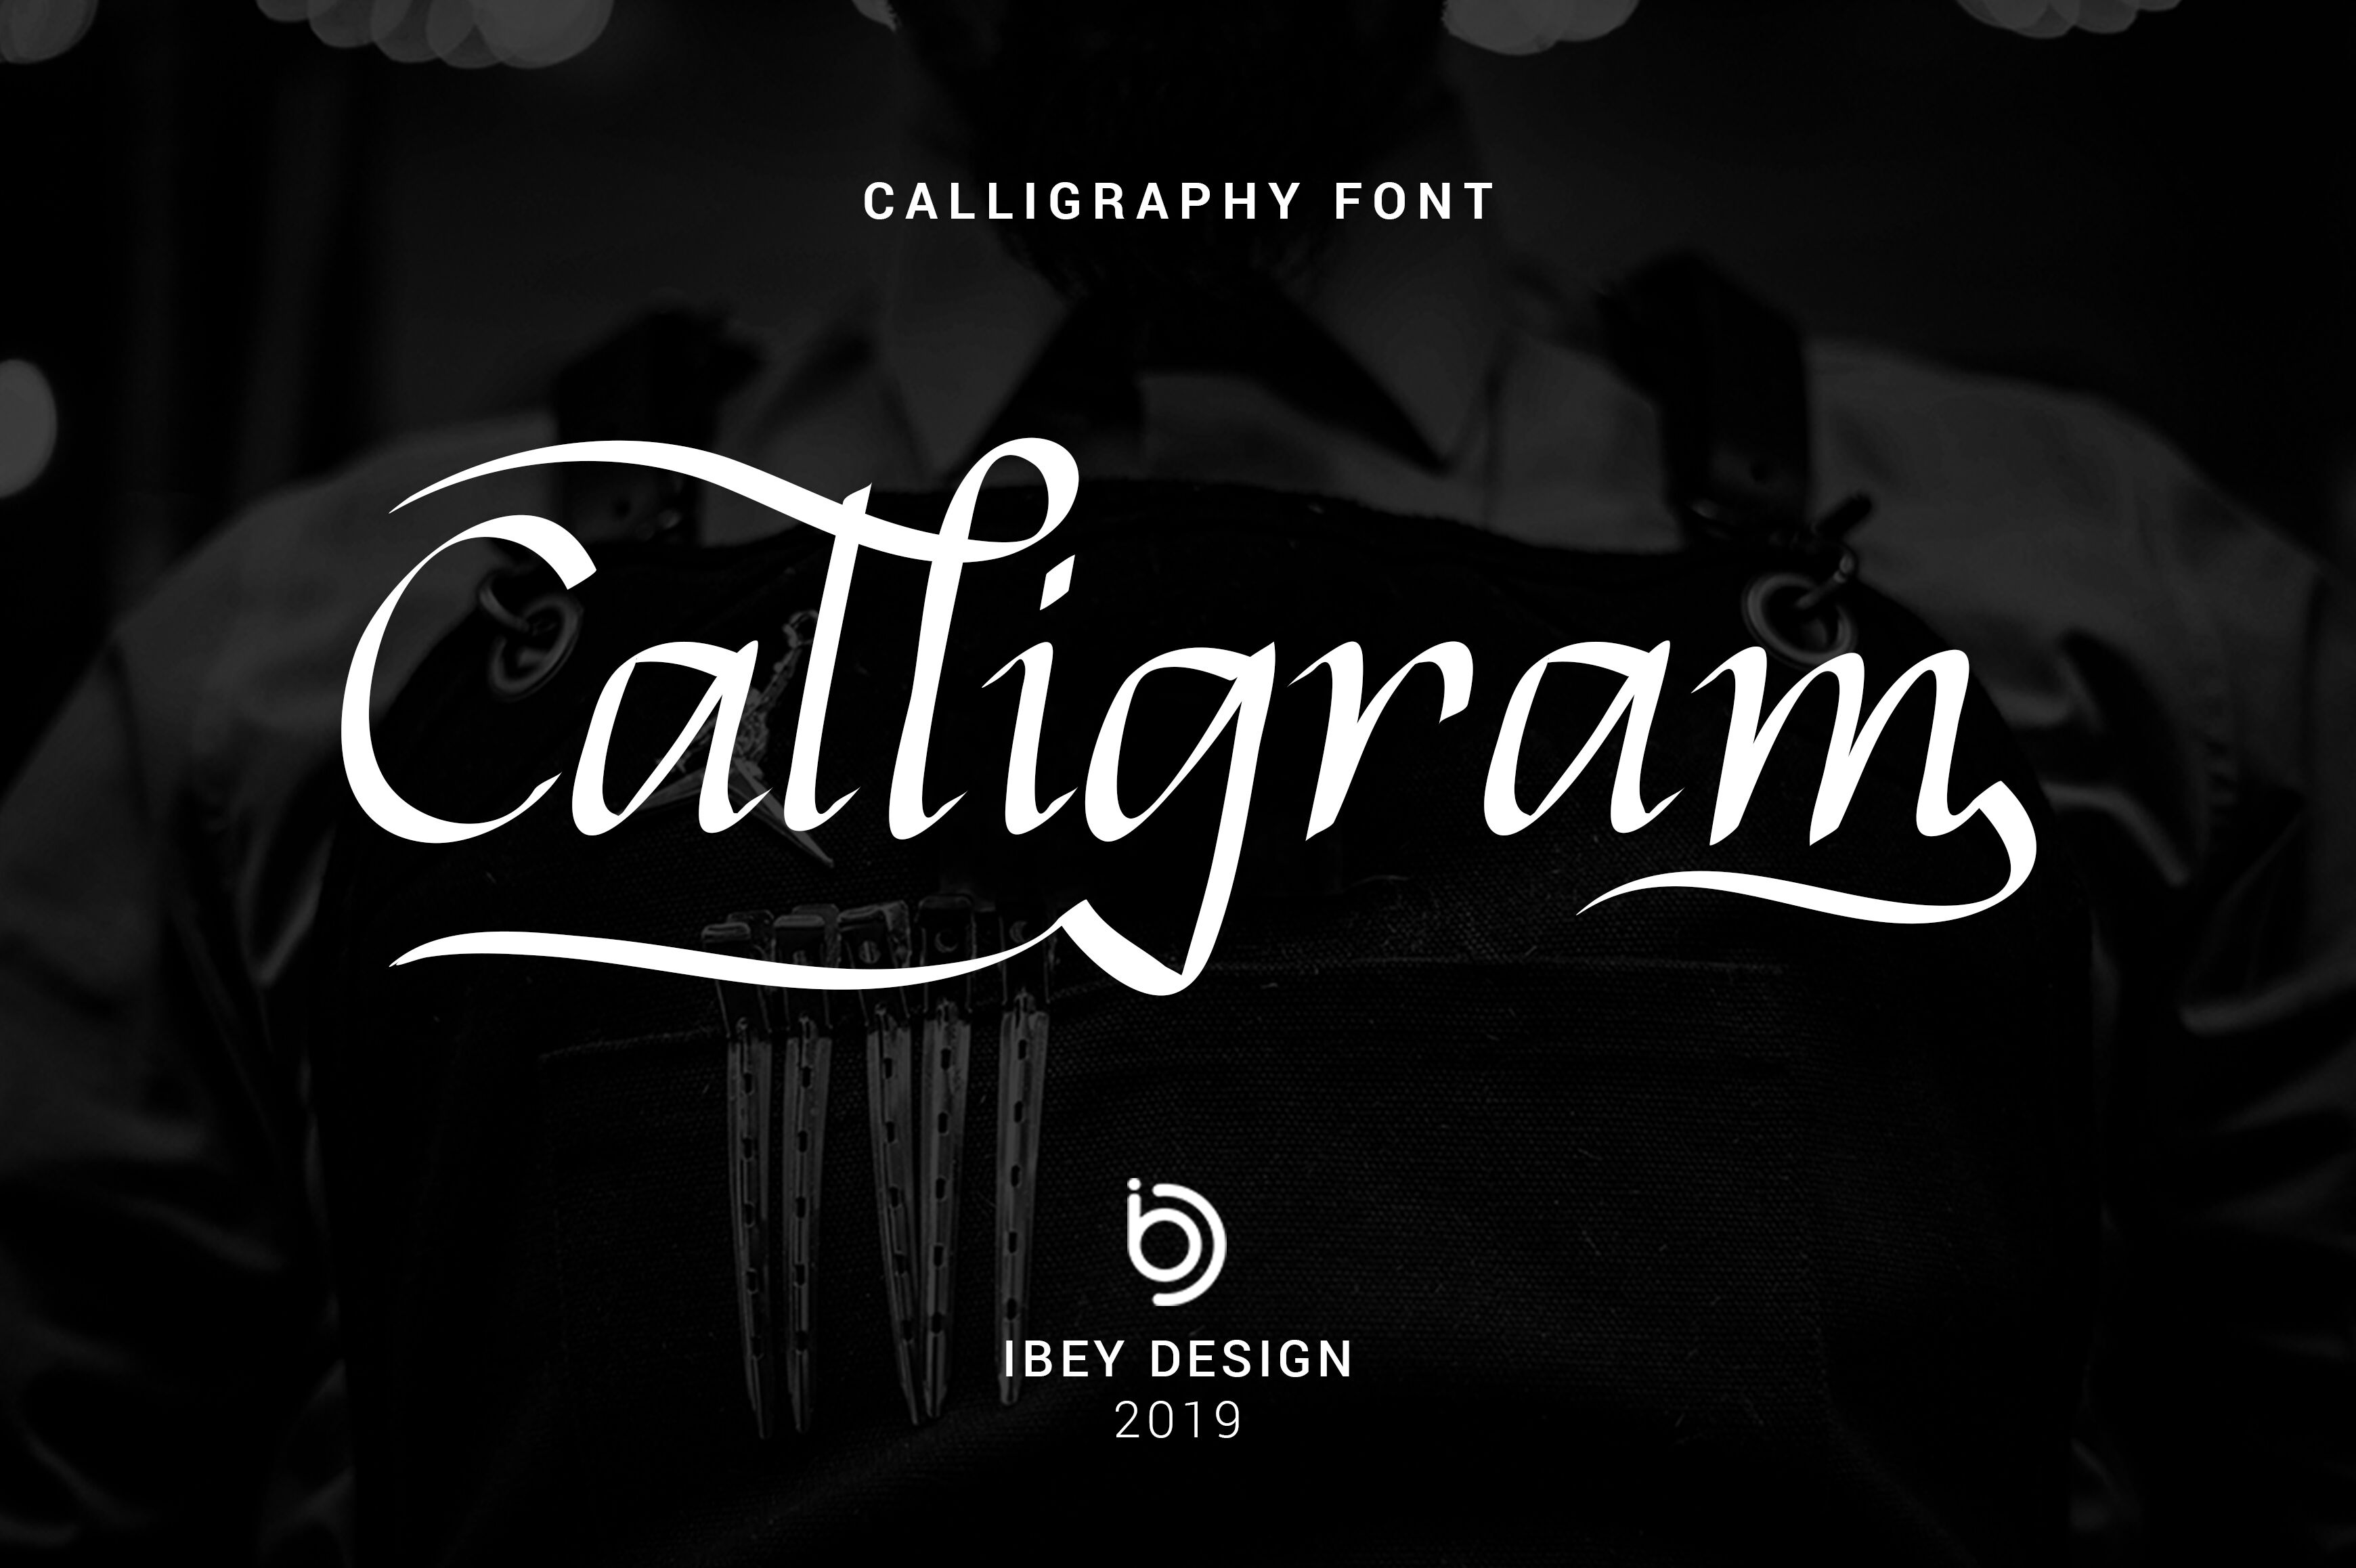 Calligram Stylish Calligraphy Font By Ibey Design